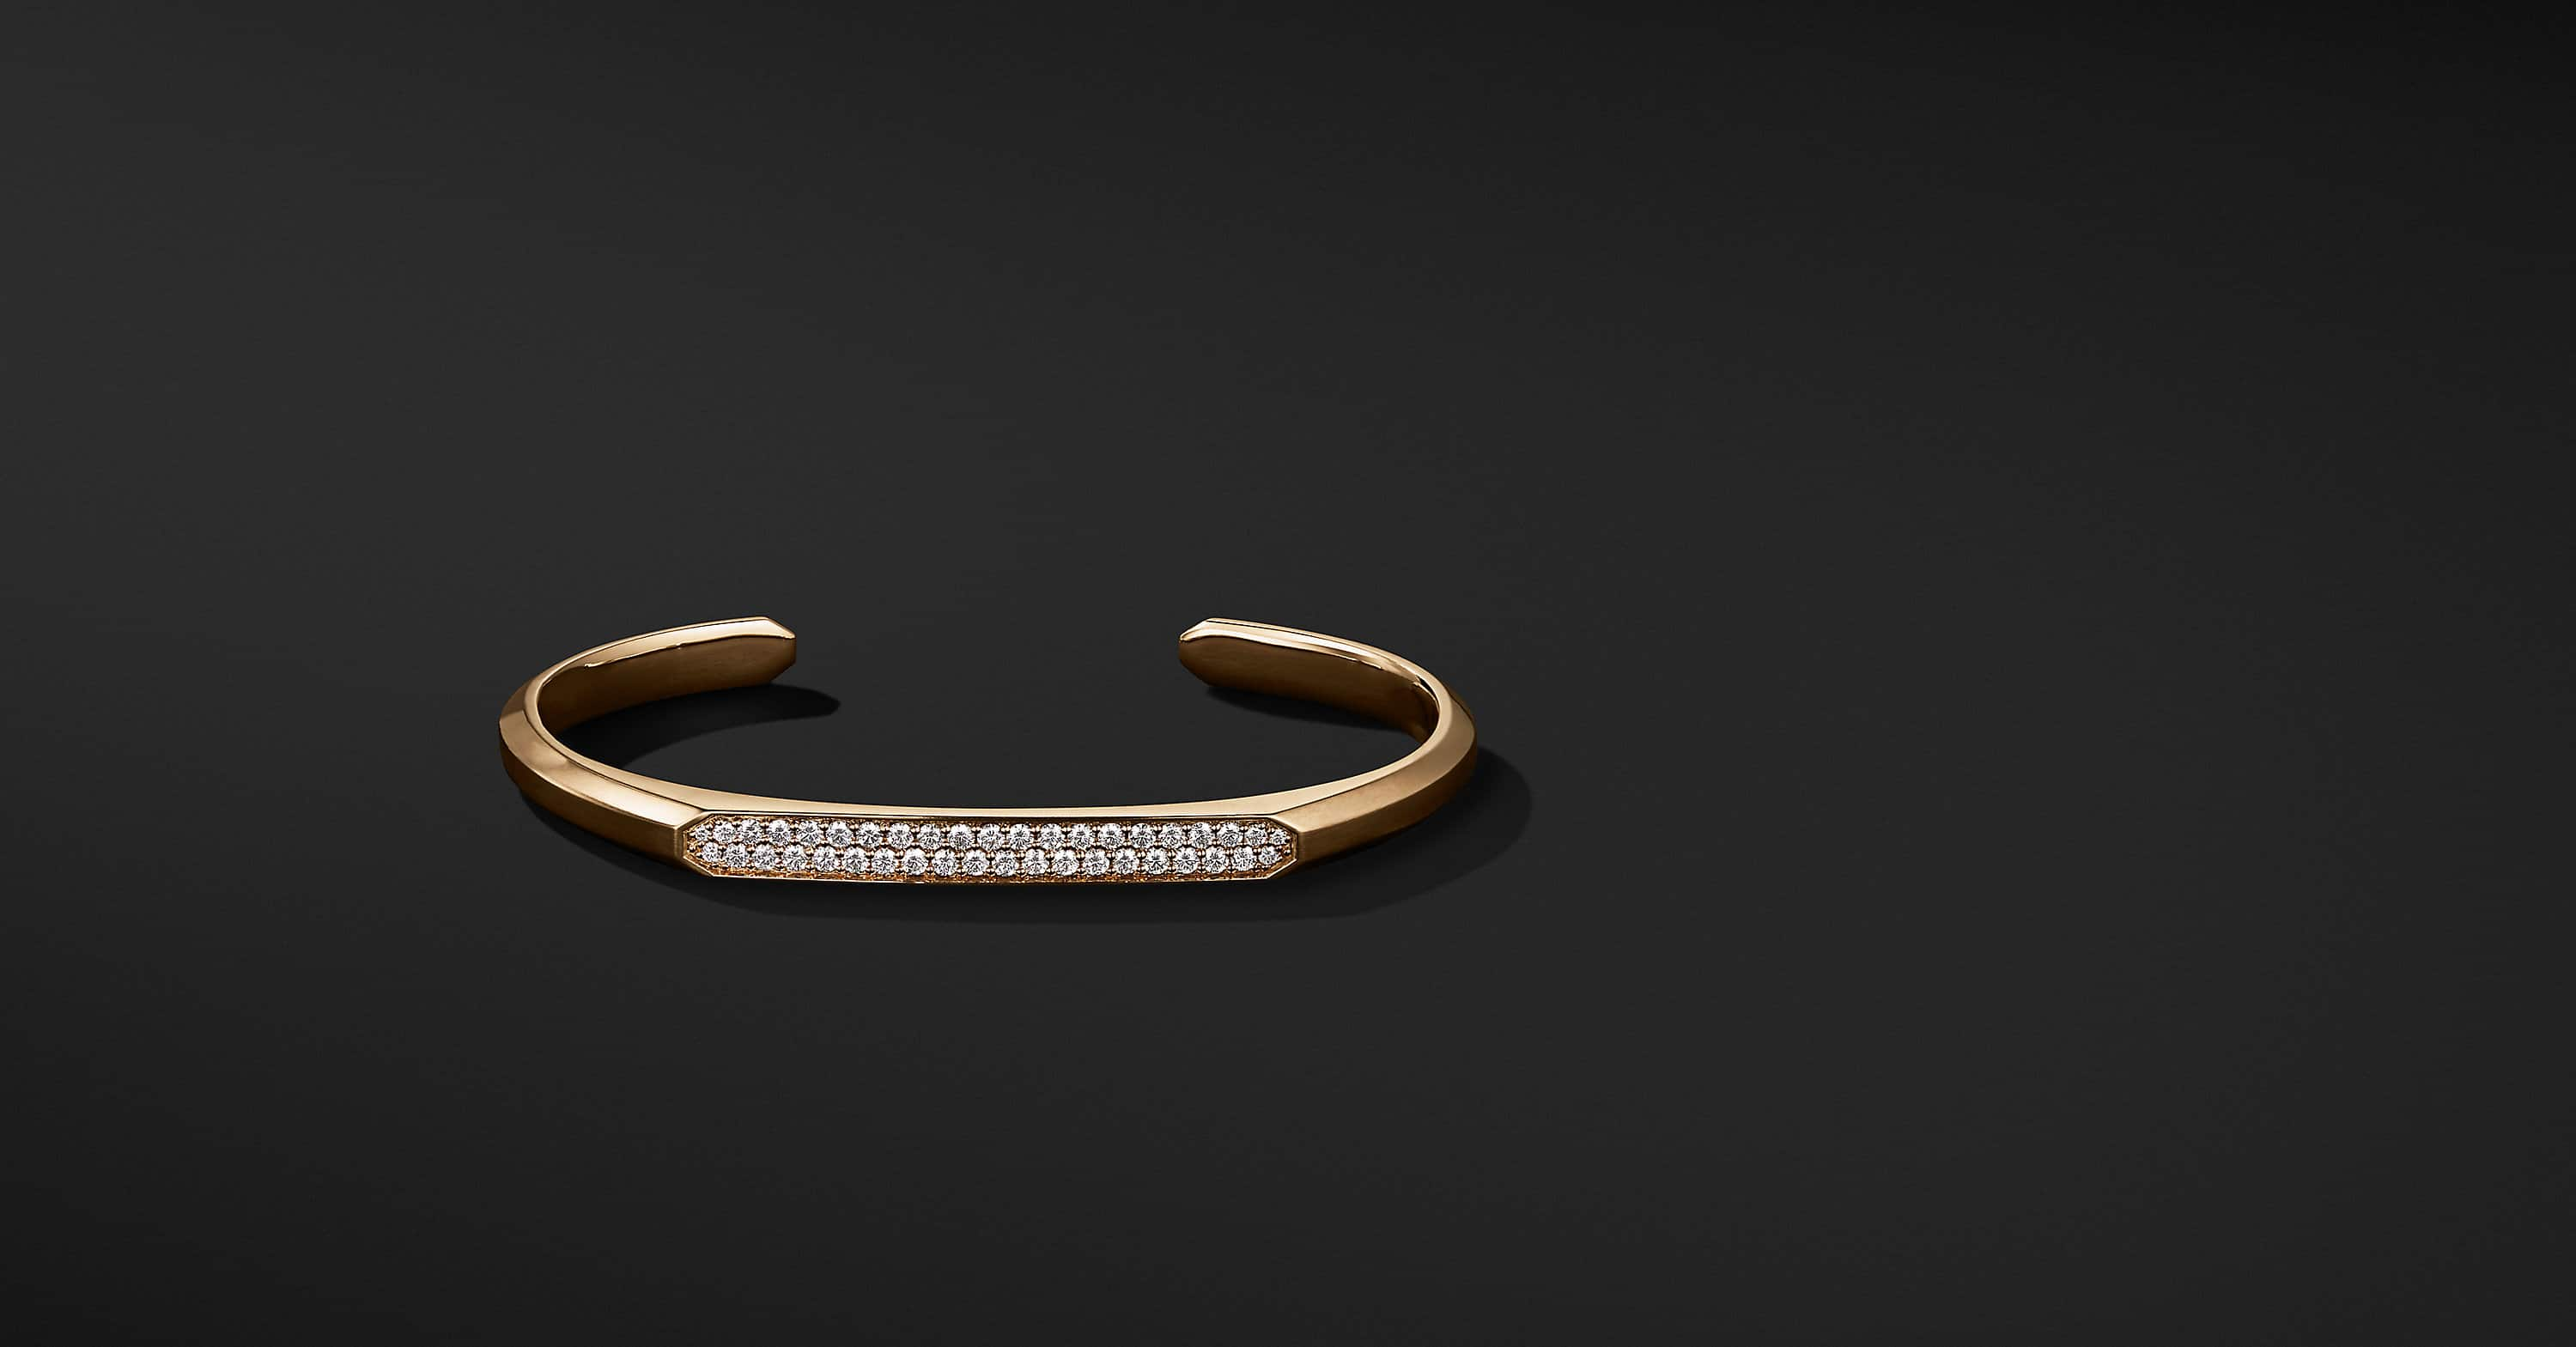 Streamline Narrow Cuff Bracelet in 18K Gold